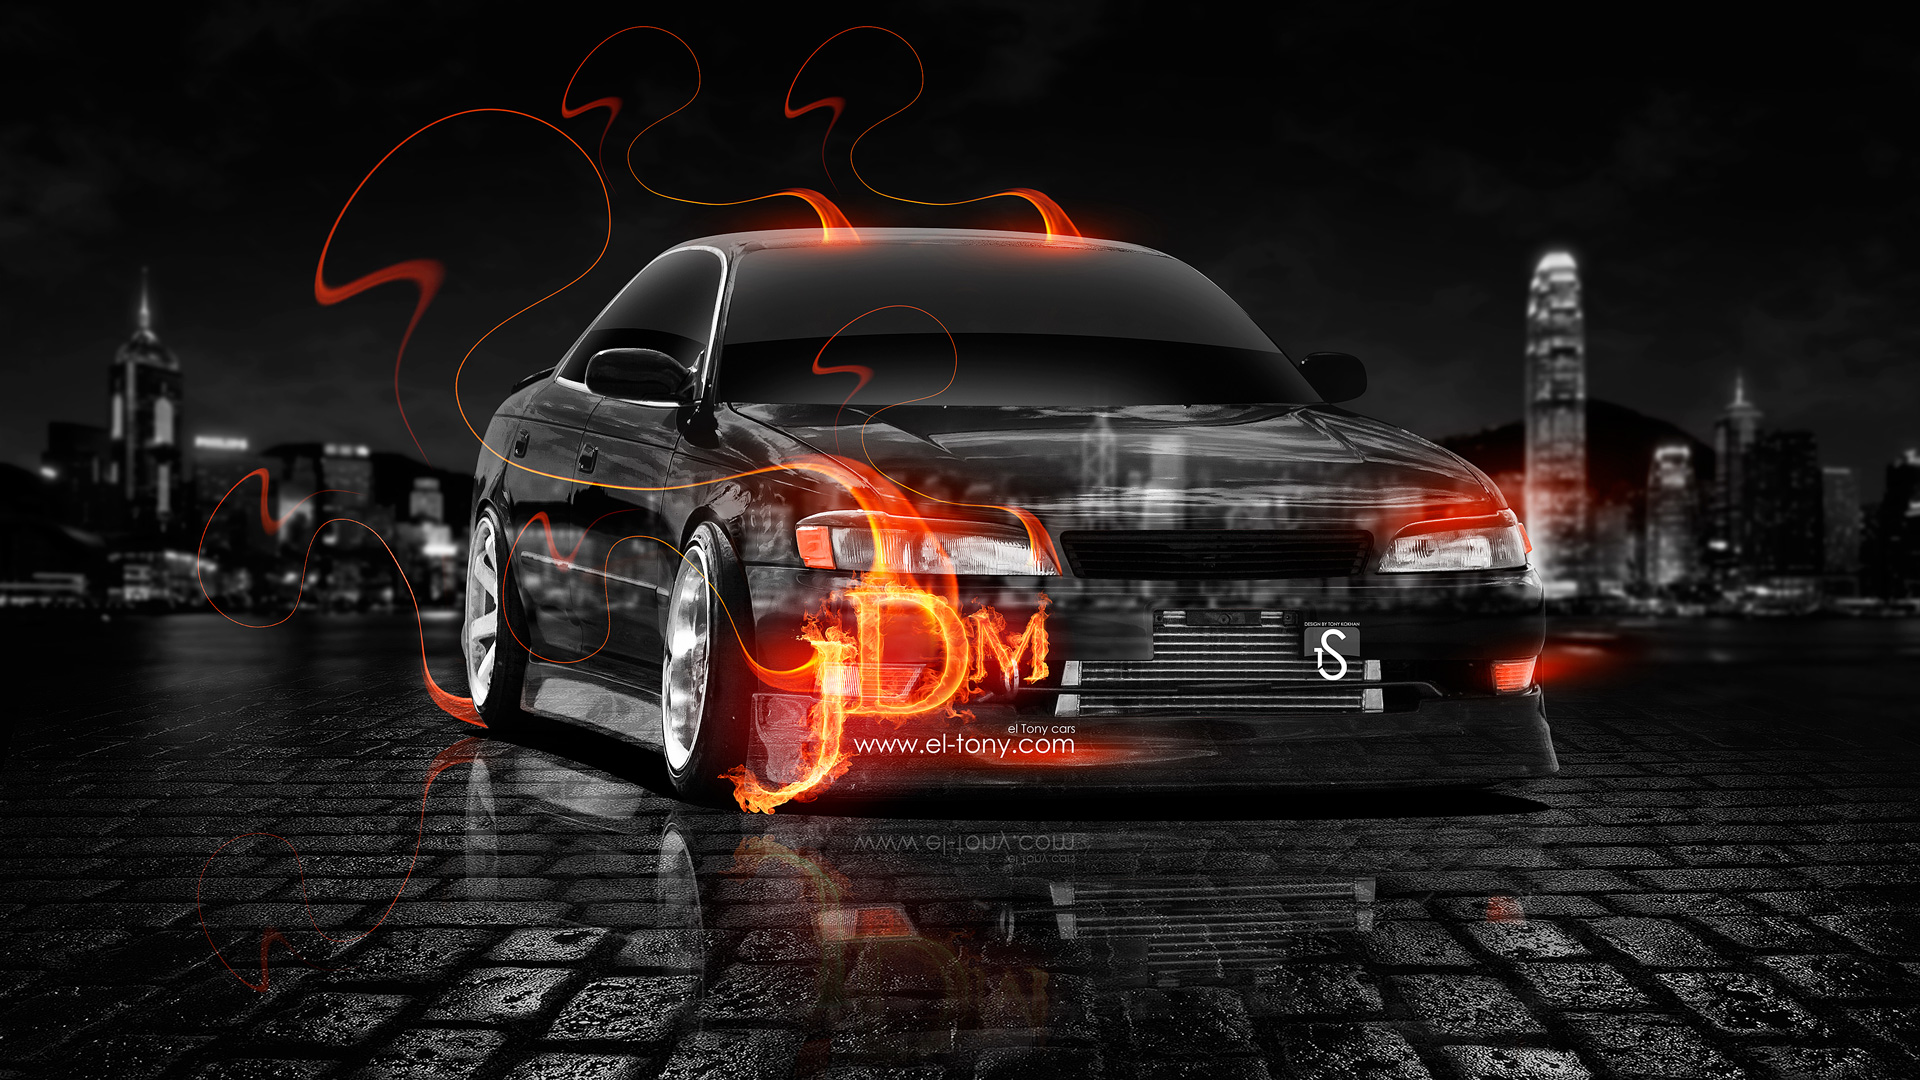 Superbe Toyota Mark 2 JZX90 JDM Fire Crystal City Car 2013